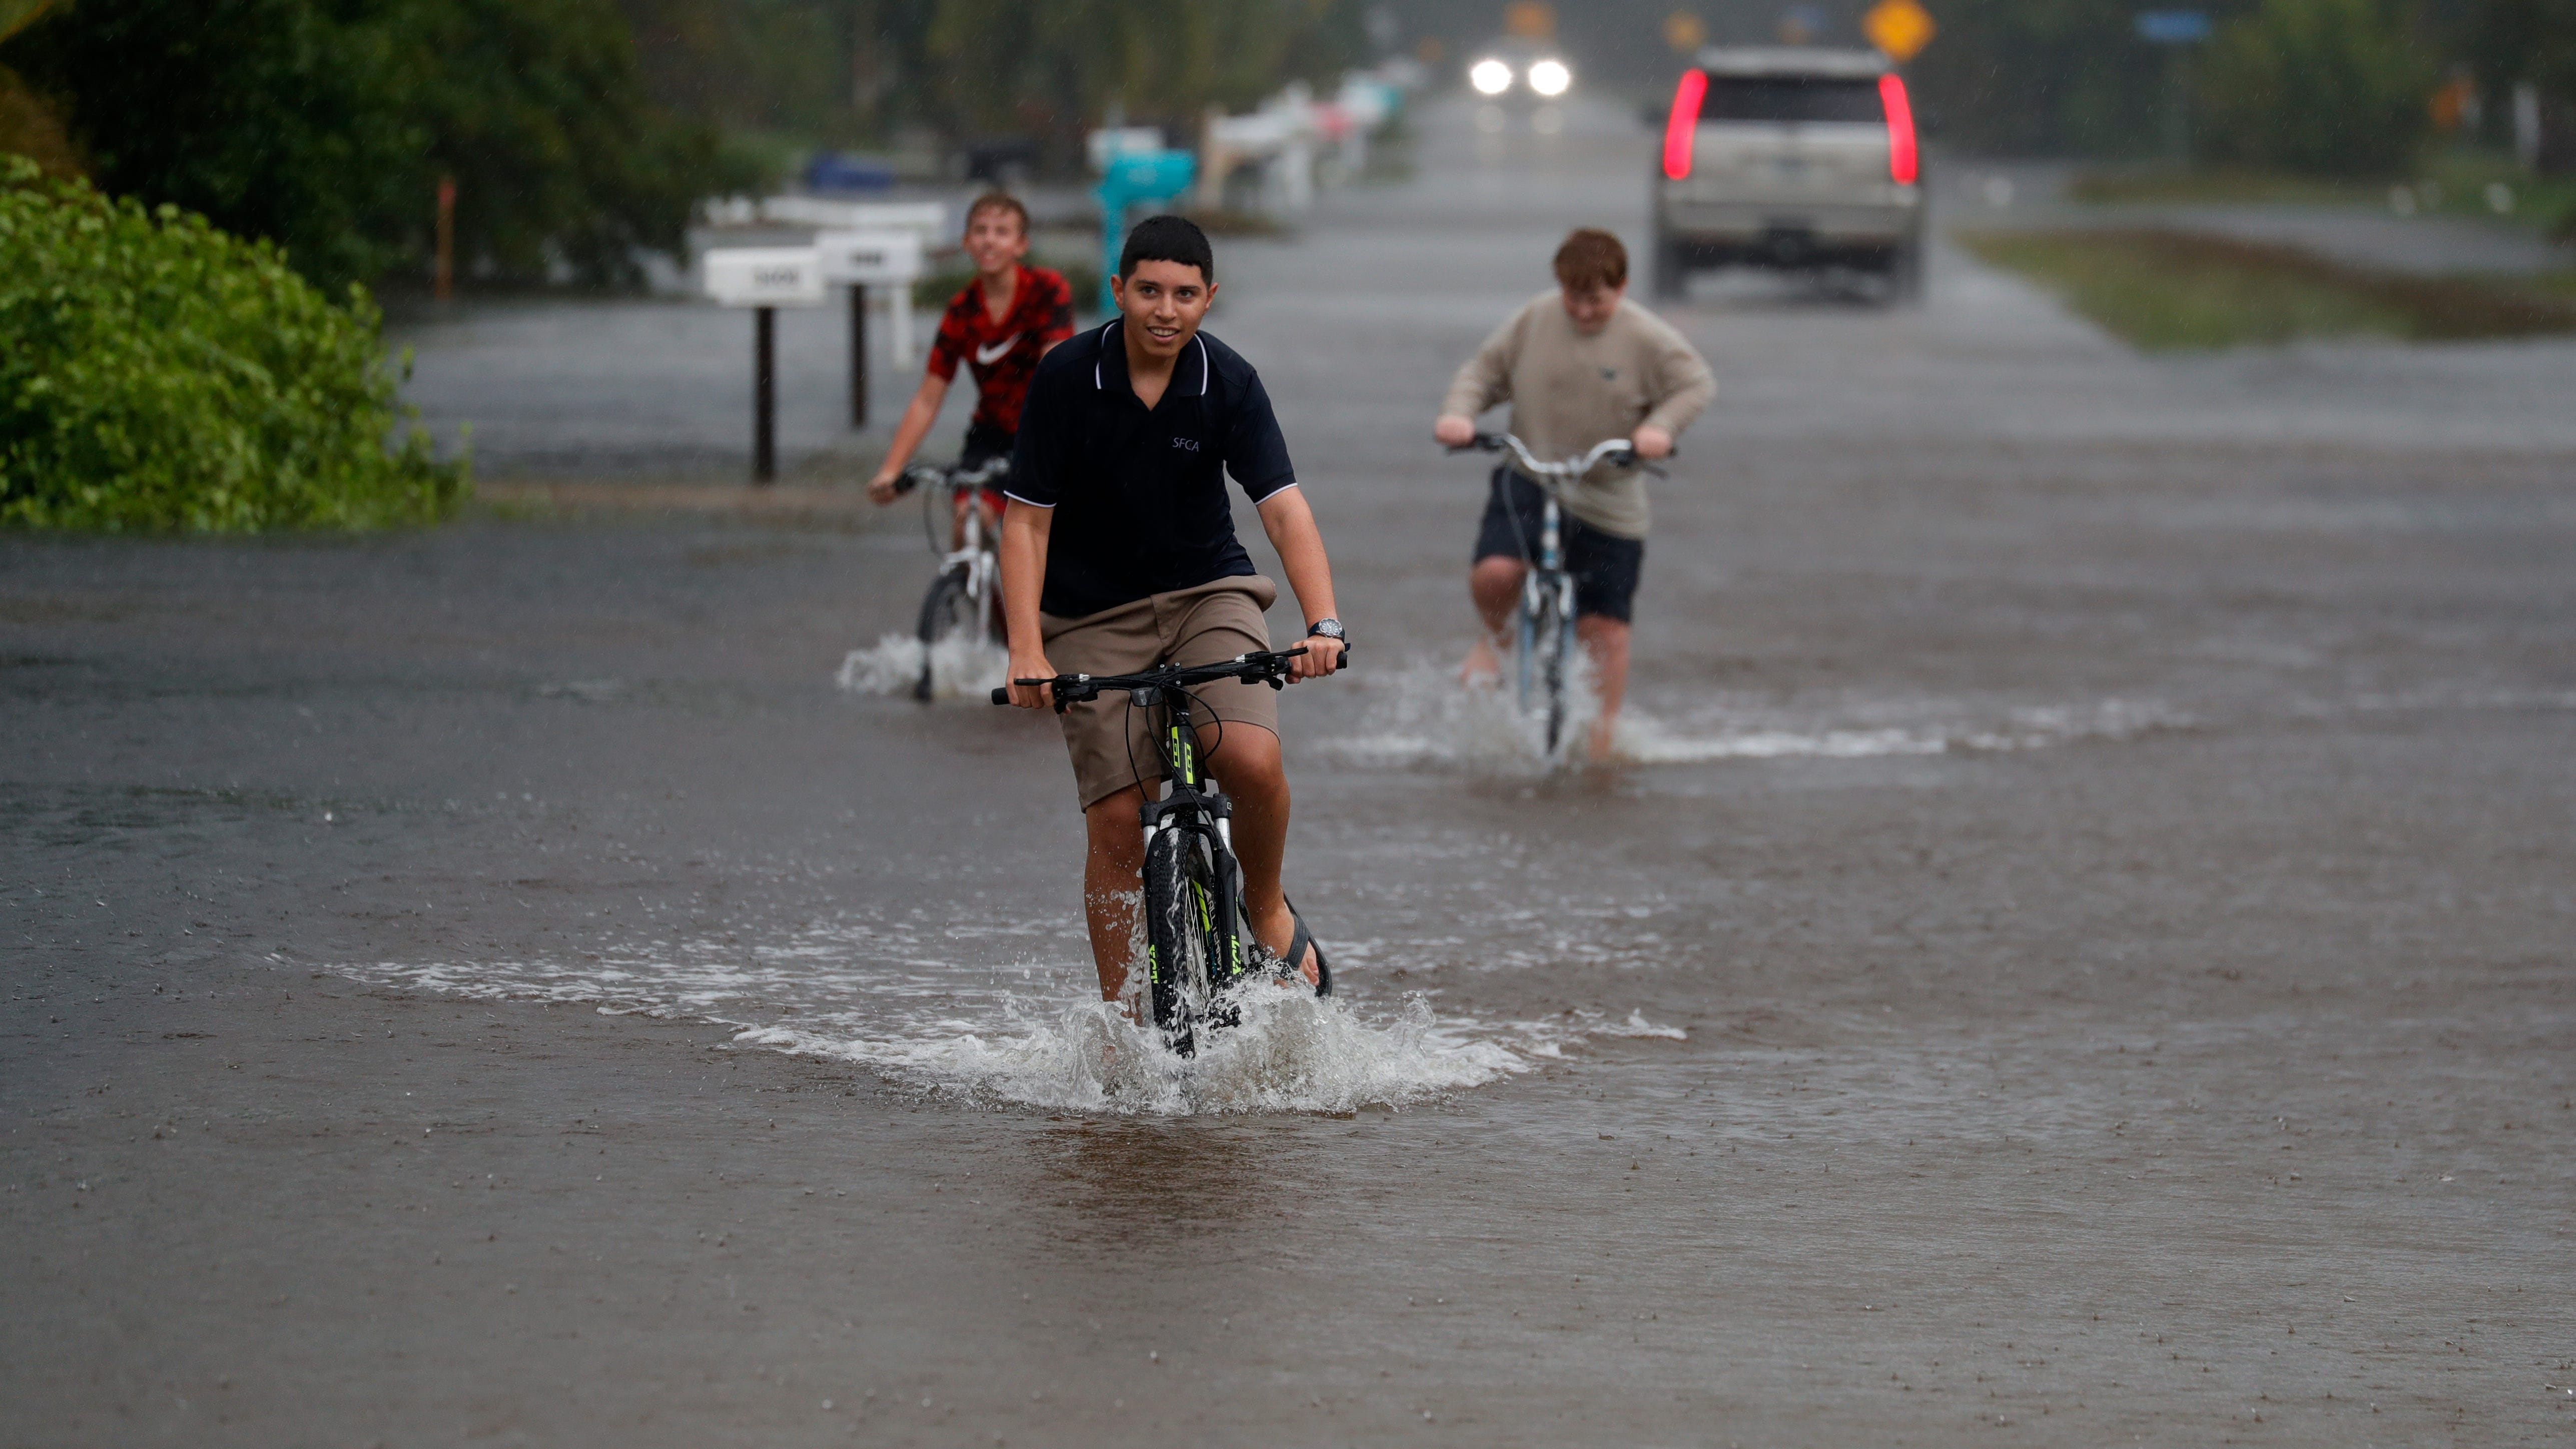 Jayden Diaz, 14, along with friends Kayden Hallmon, 12, left, and Randy Hanshaw,14, ride their bikes through flooded 8th Avenue and Oleander Street in St. James City Wednesday, Nov, 11, 2020. The strong winds and rain from Hurricane EtaÊwere impacting the area.